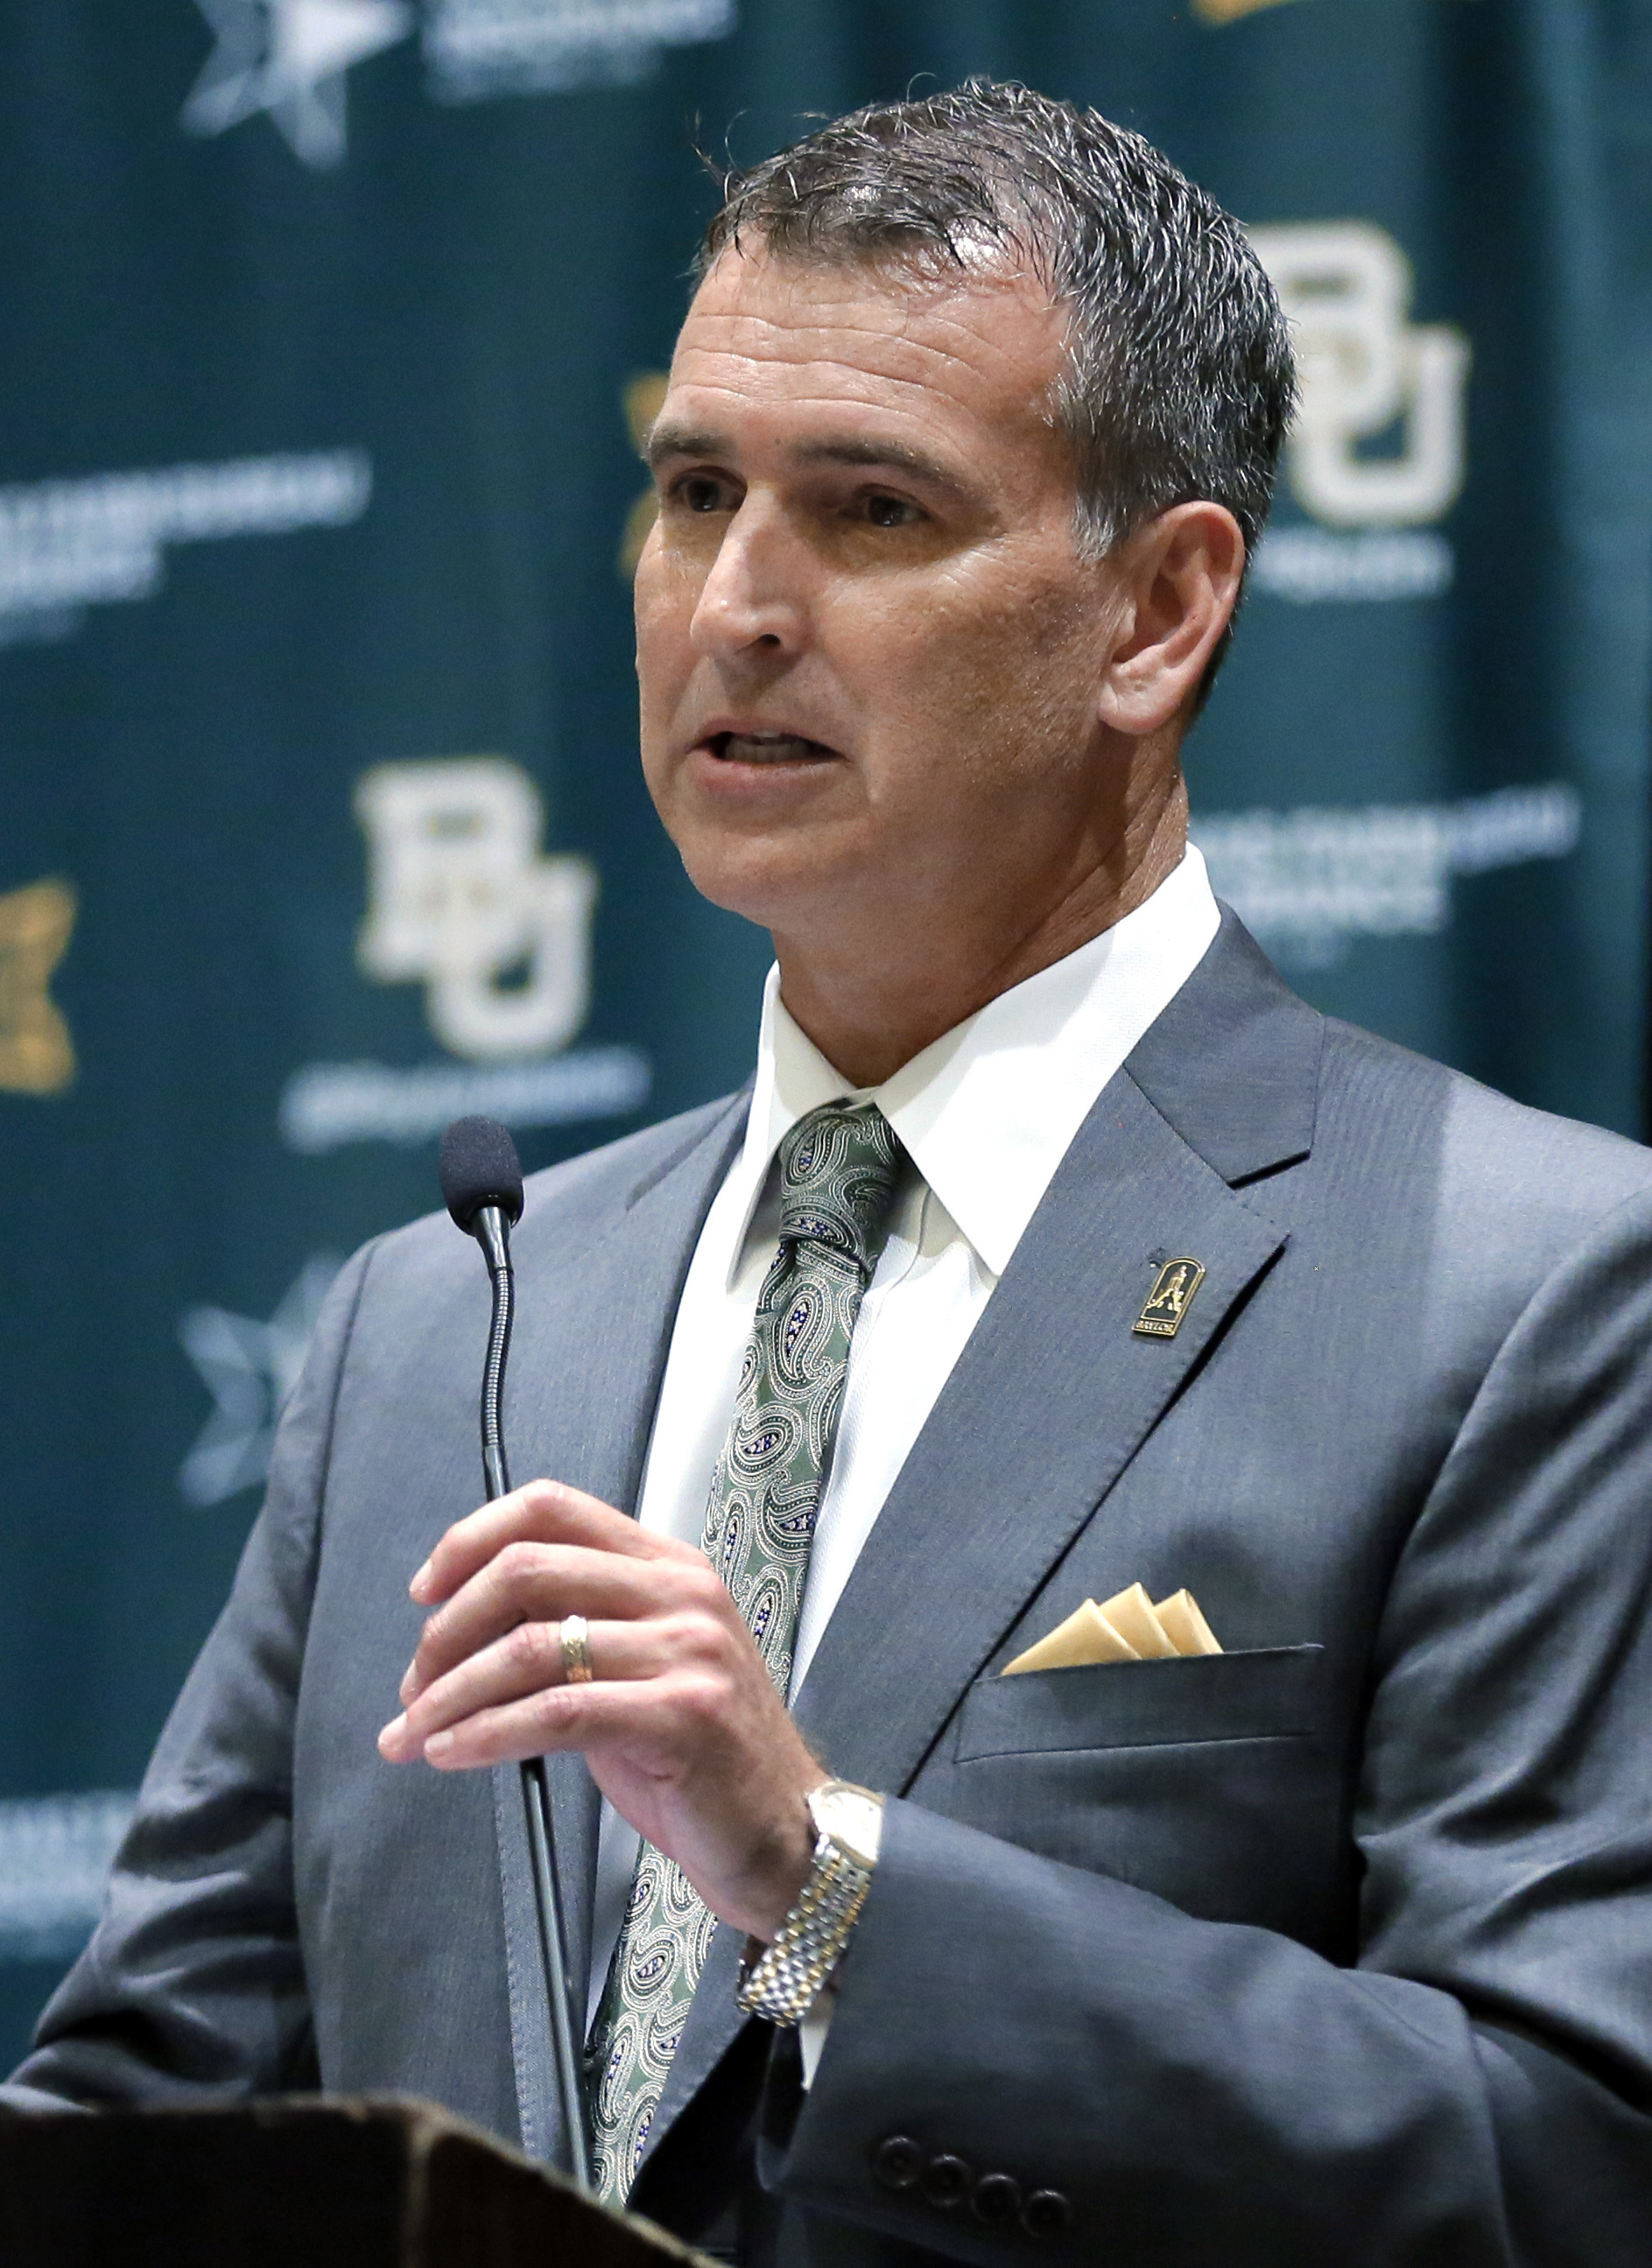 Baylor athletic director Mack Rhoades, responds to questions during a news conference at Big 12 media days, Monday, July 18, 2016, in Dallas. (AP Photo/Tony Gutierrez)